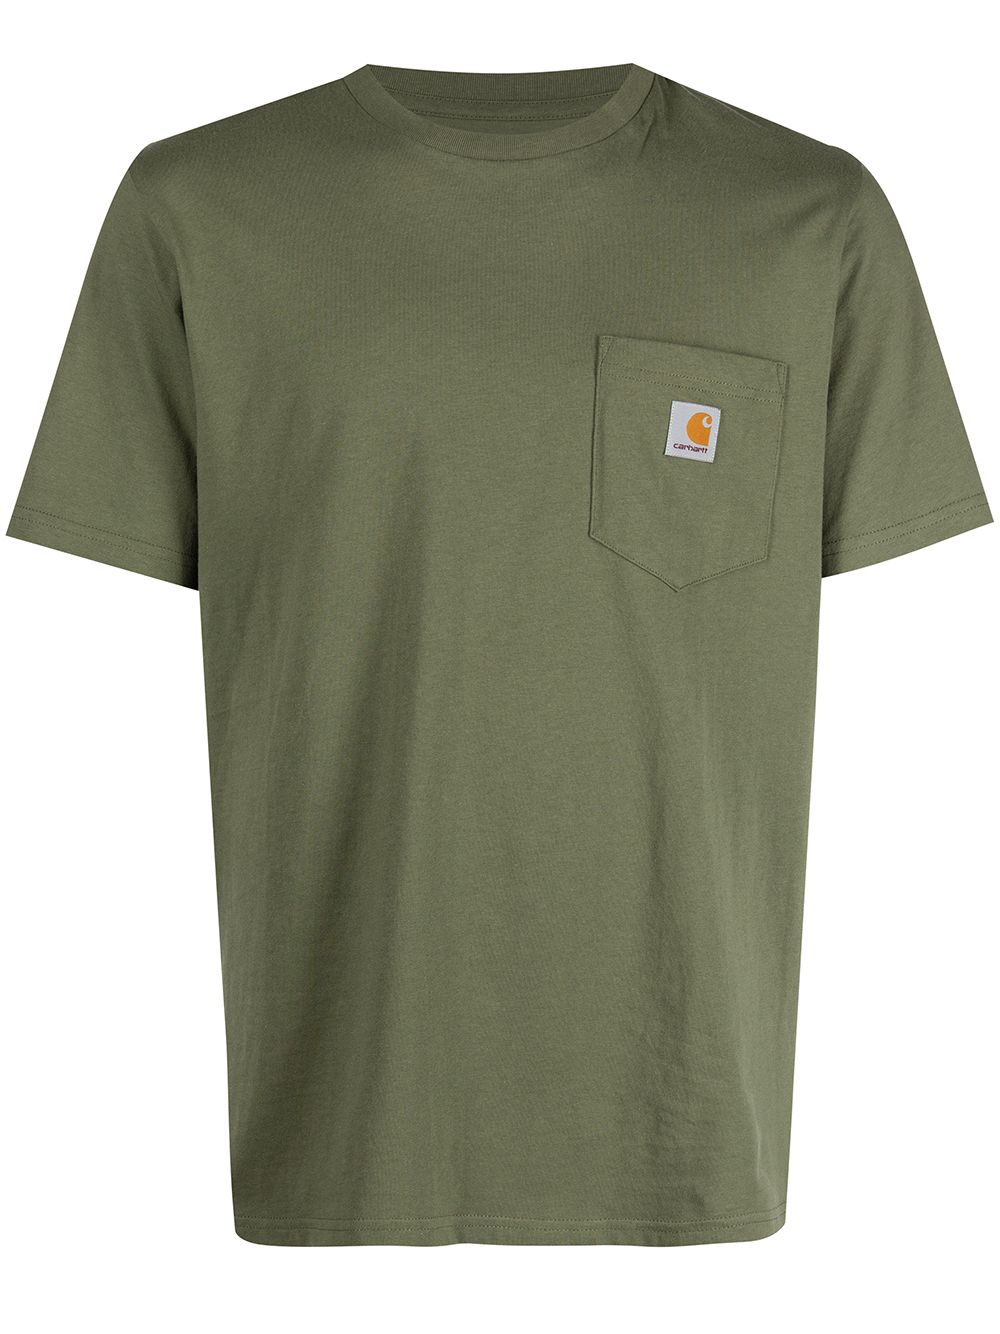 POCKET T-SHIRT CARHARTT WIP | T-shirts | I022091667.00